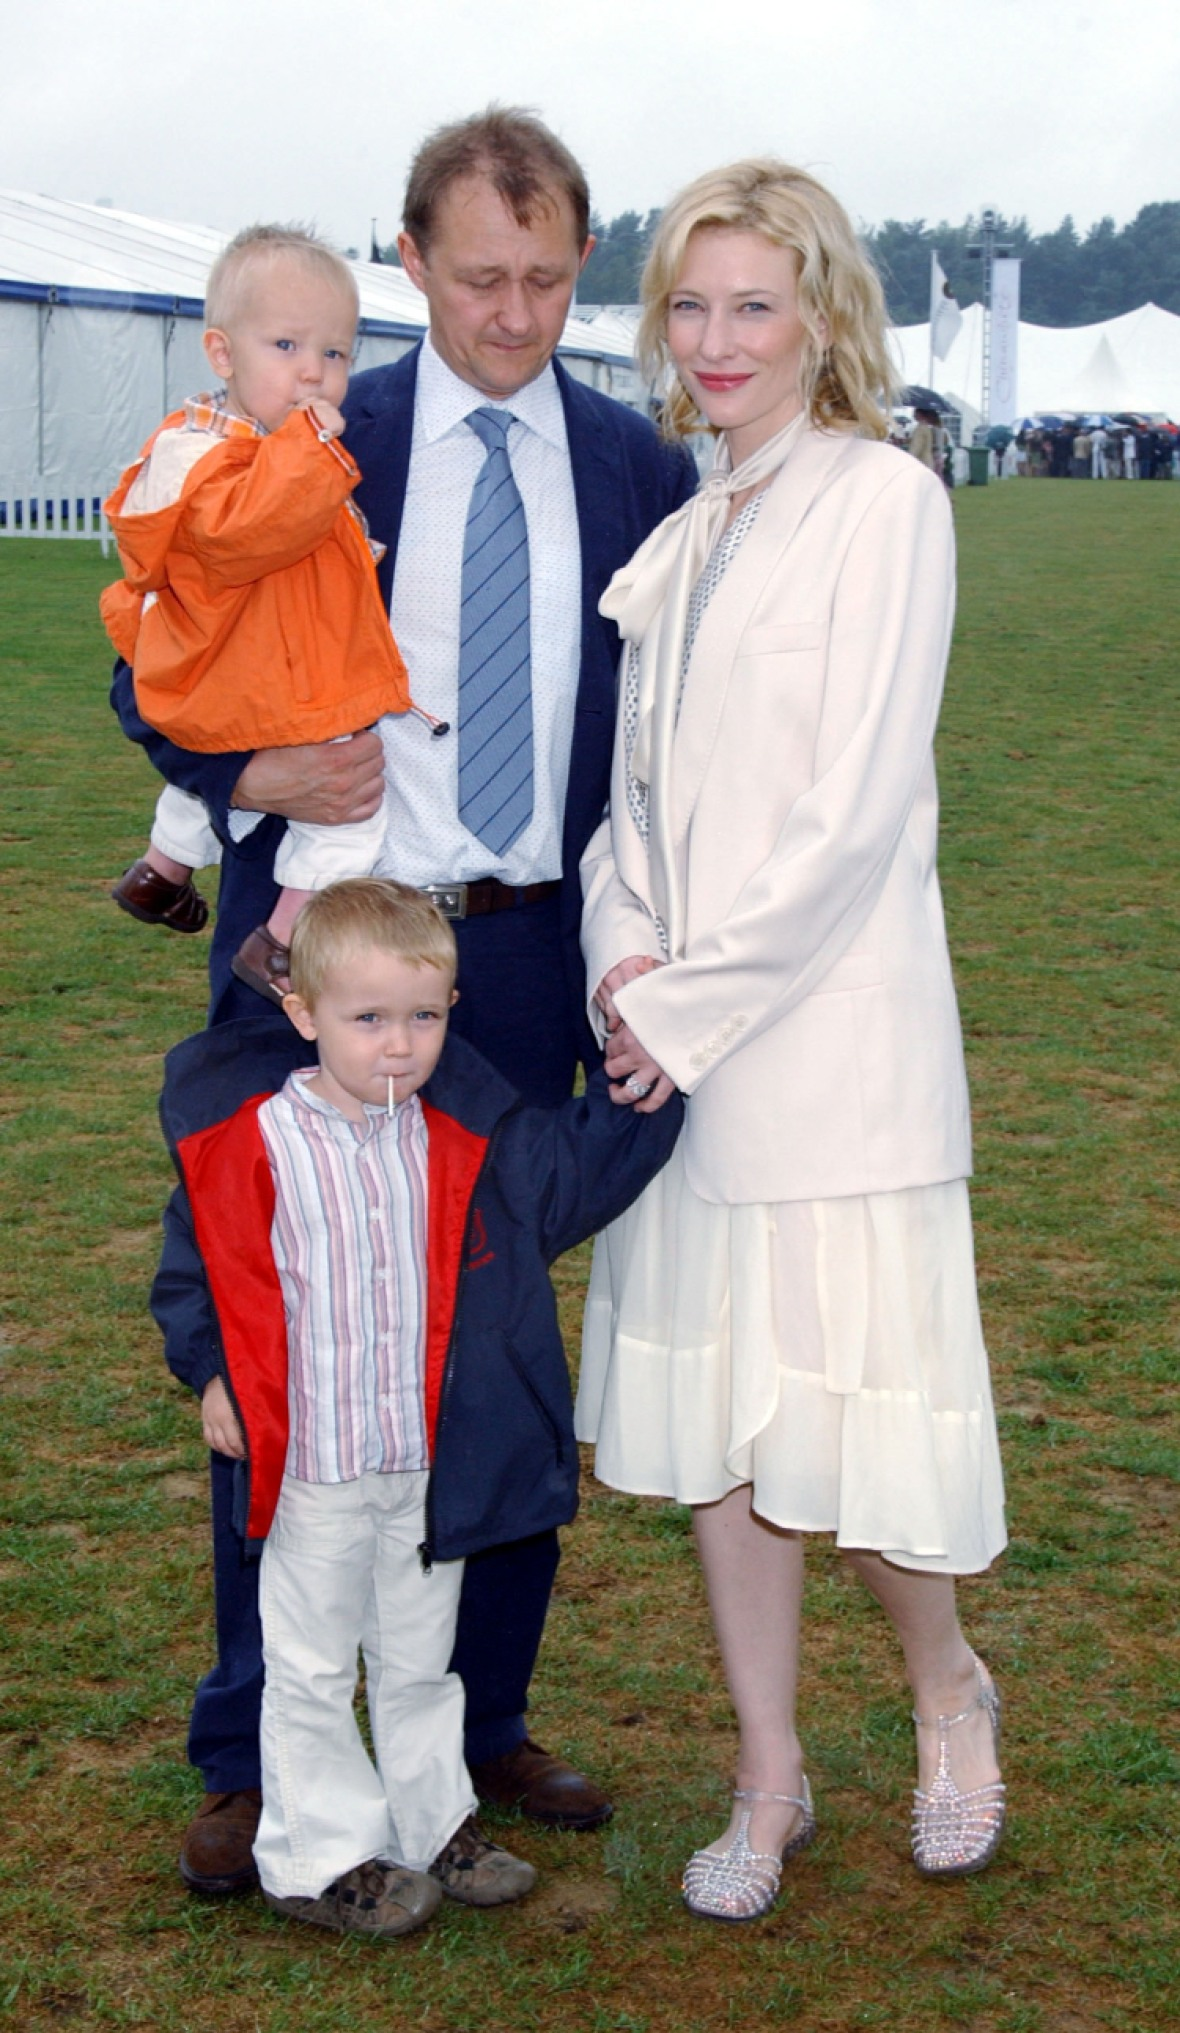 cate and her family in 2005. (photo credit: getty images)